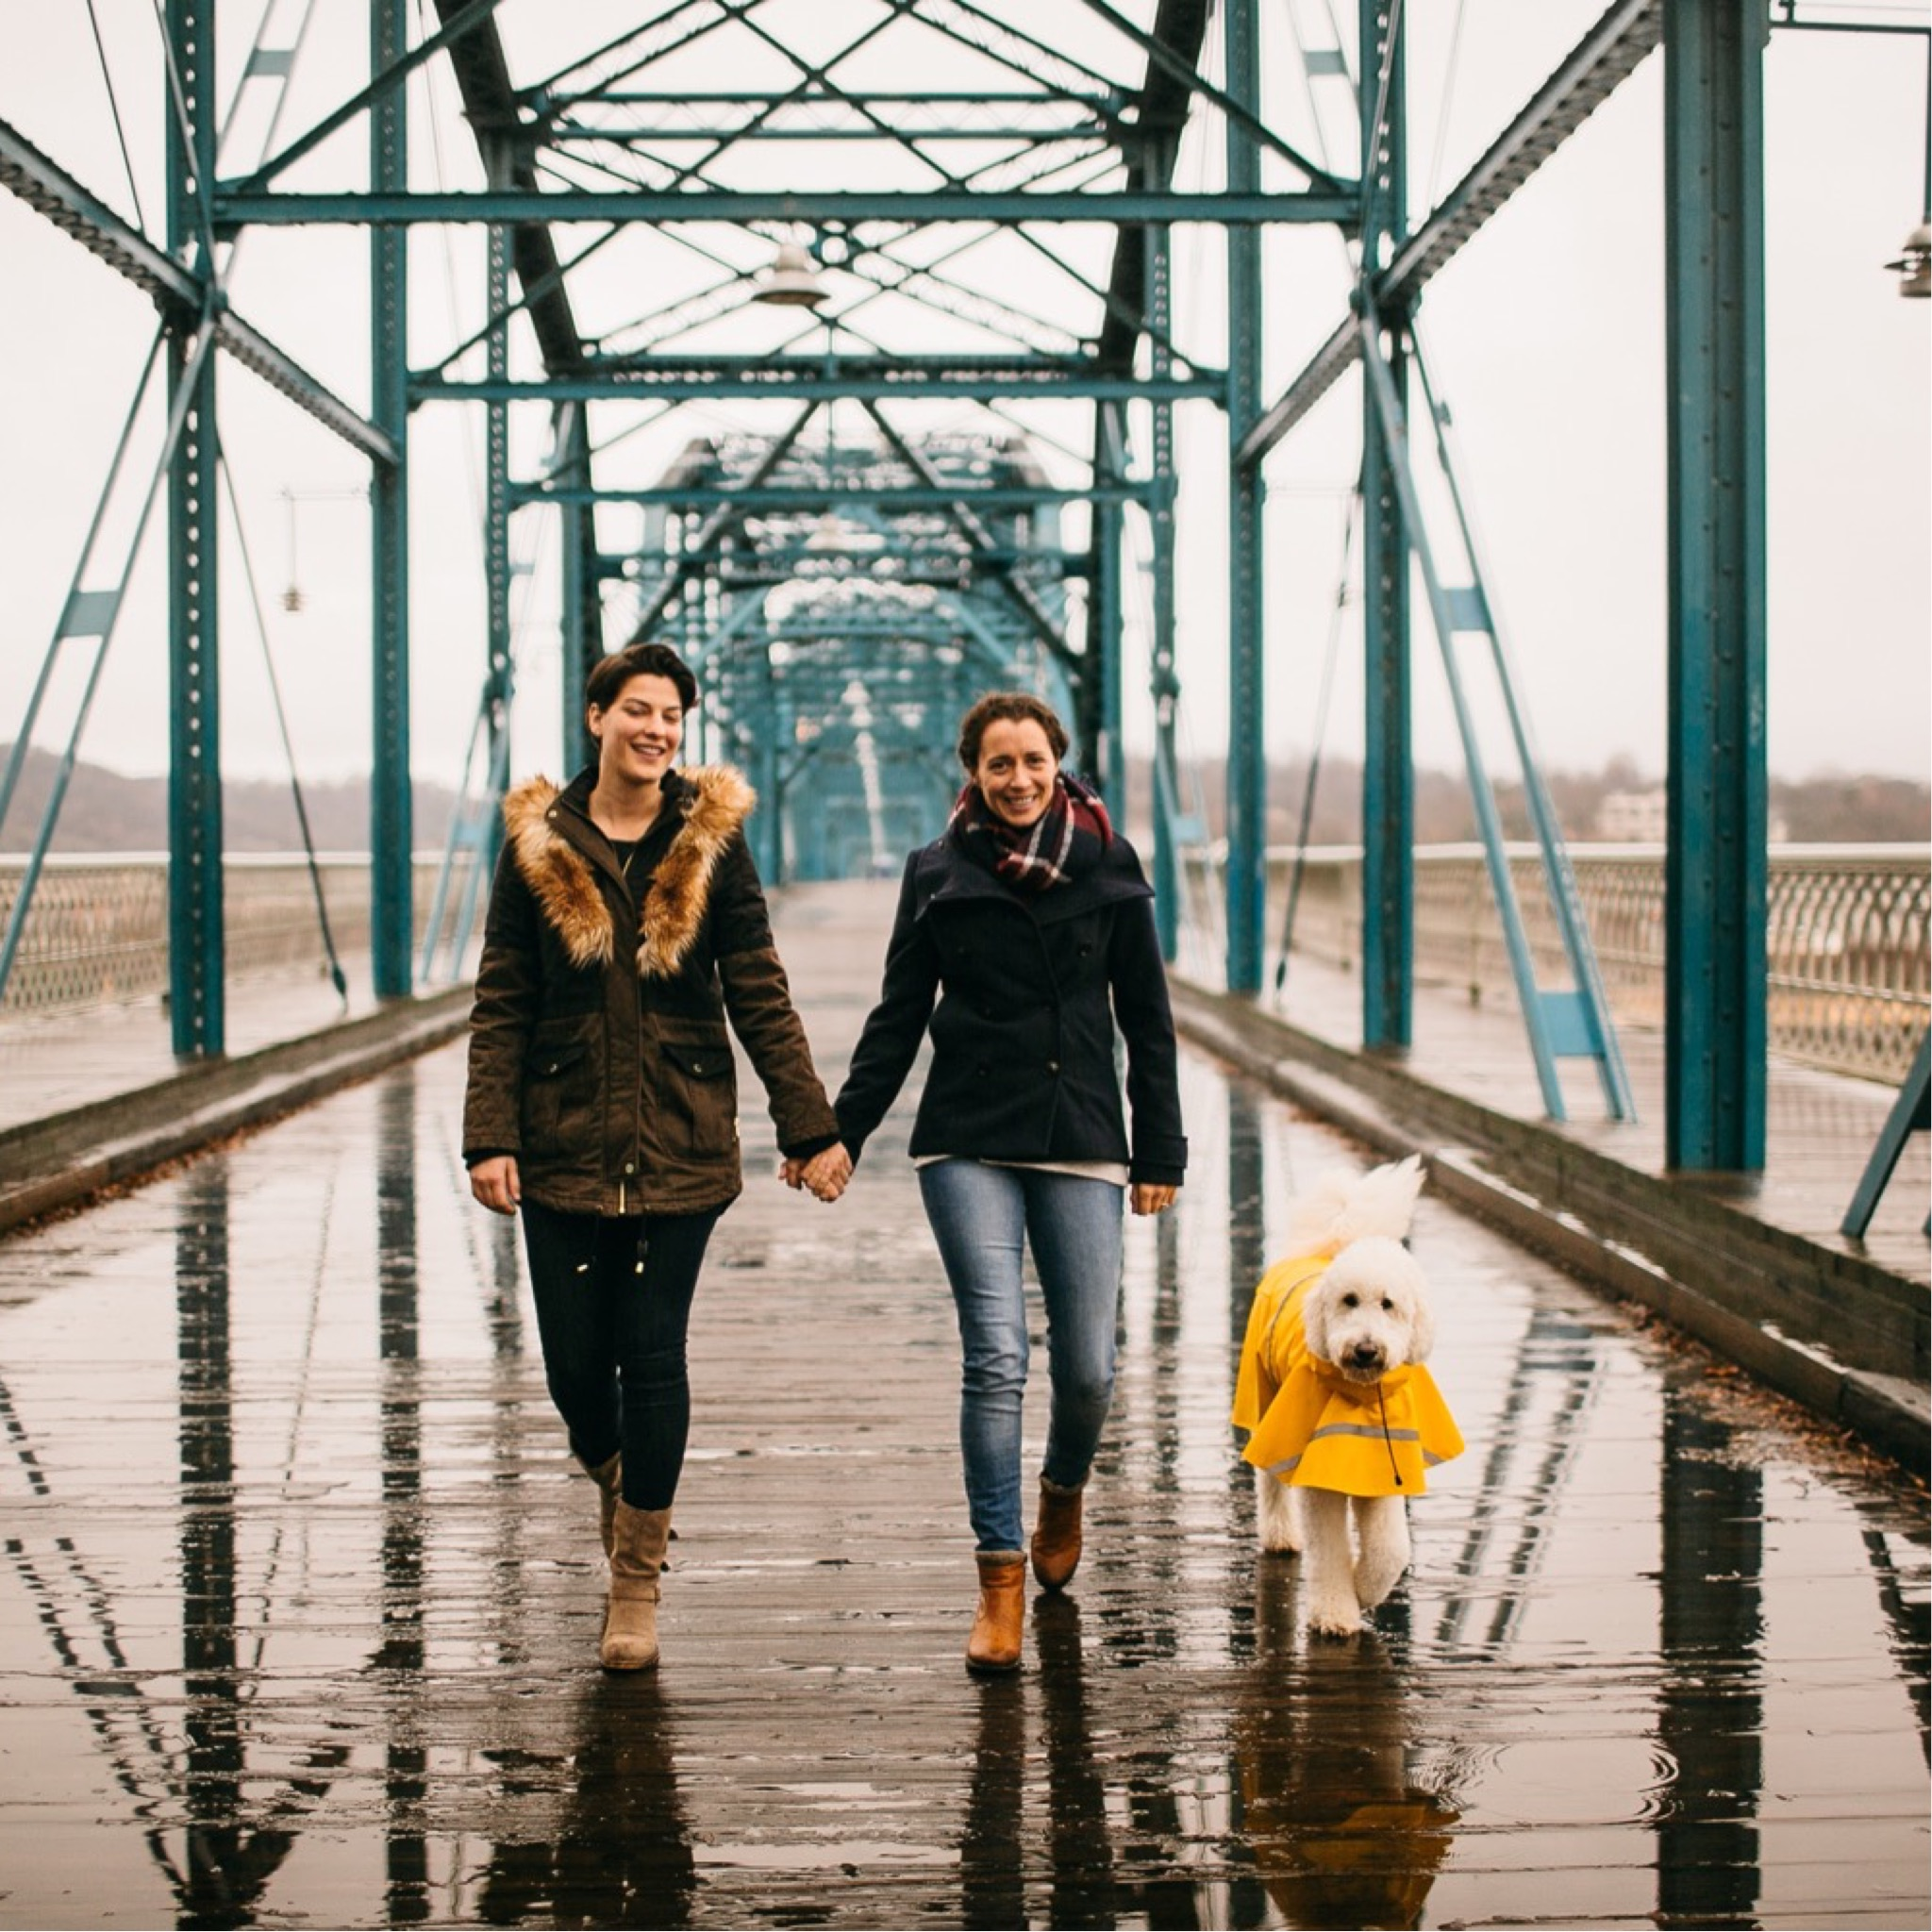 A lesbian couple holds hands on a bridge in the rain. They're walking their dog, a white goldendoodle in a yellow raincoat.